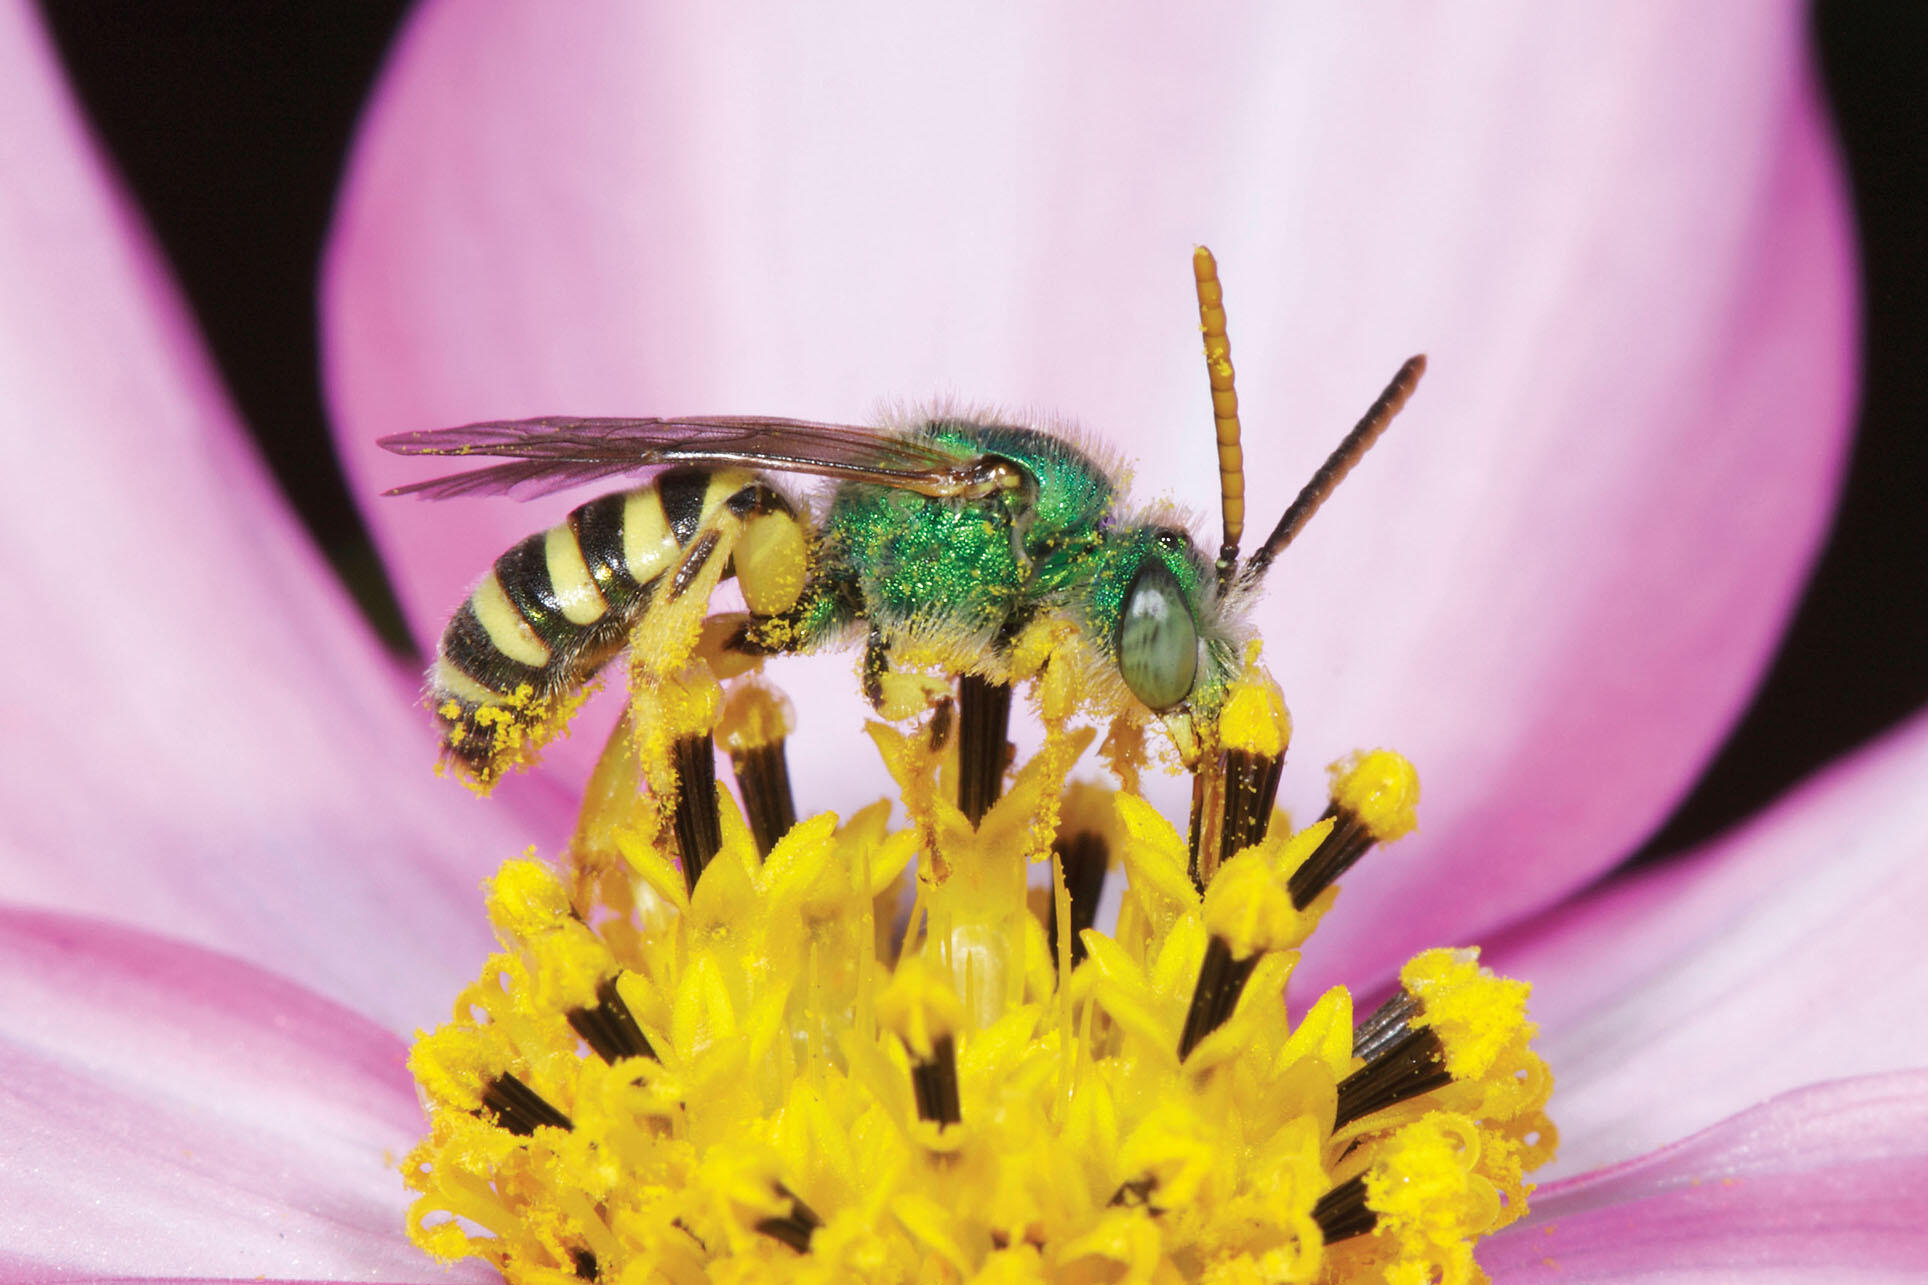 An iridescent green male ultra green sweat bee covered in yellow pollen. (Photo by Rollin Coville.)